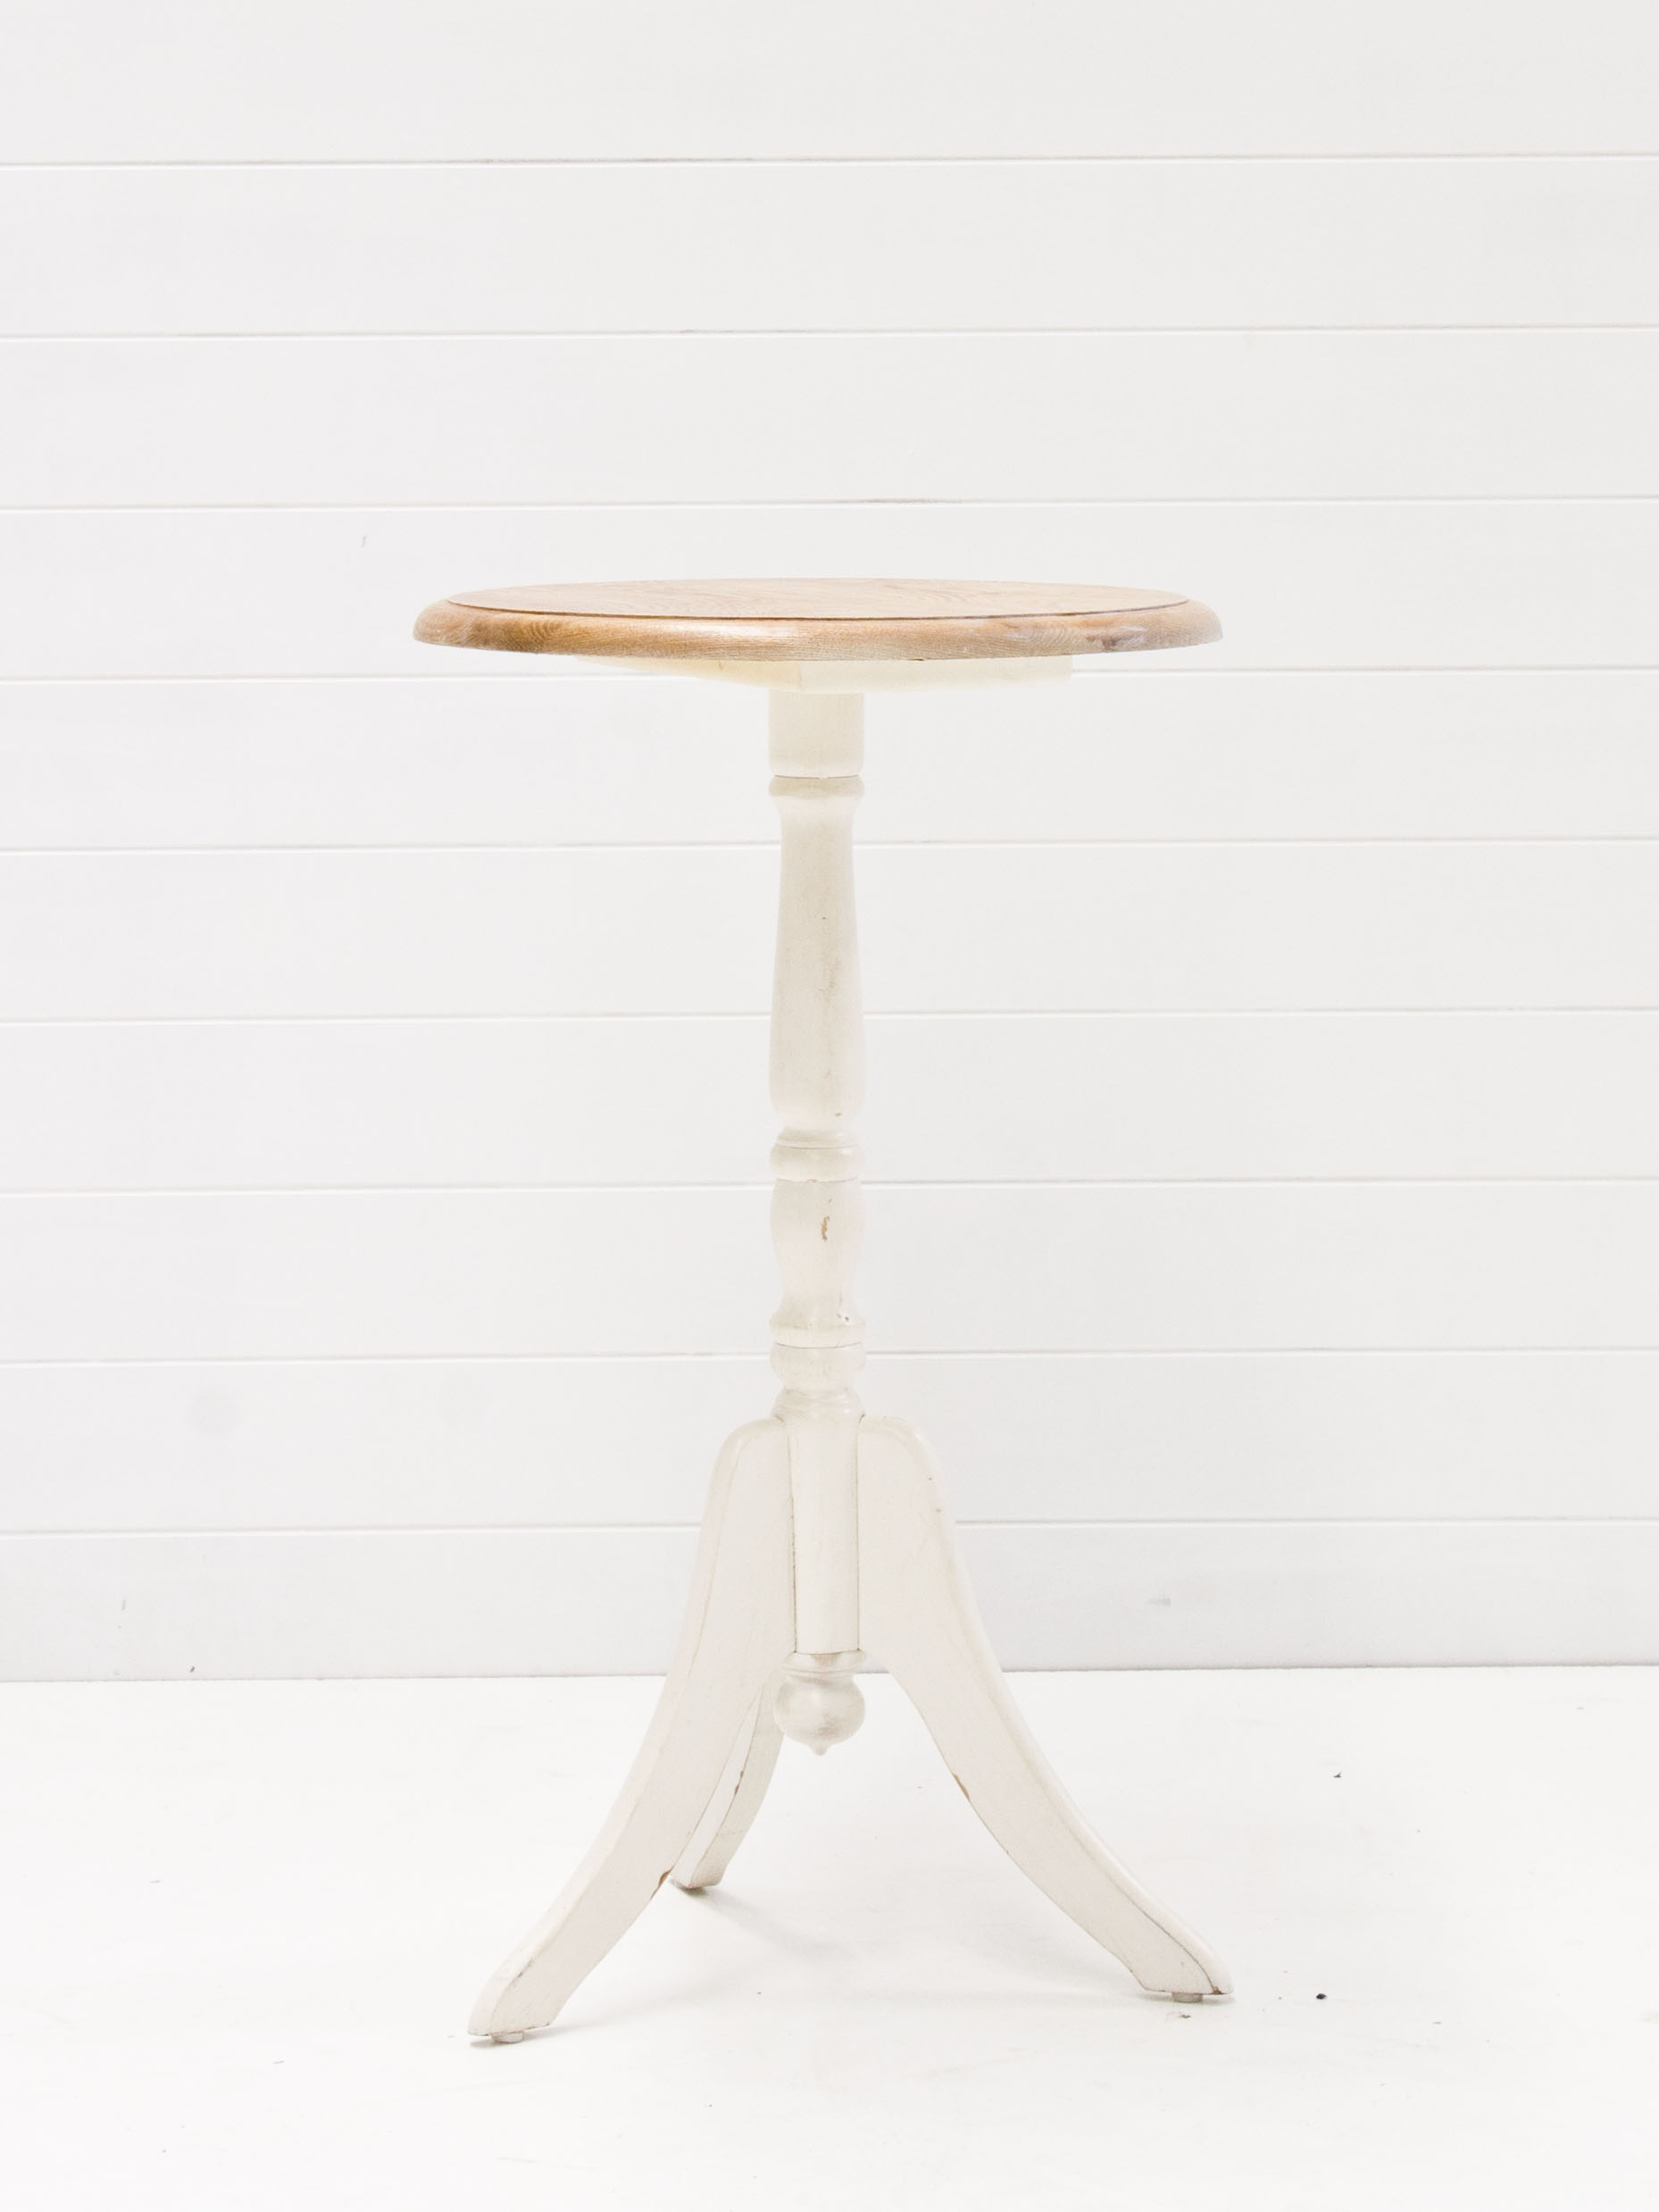 Small round wooden table with white base.jpg